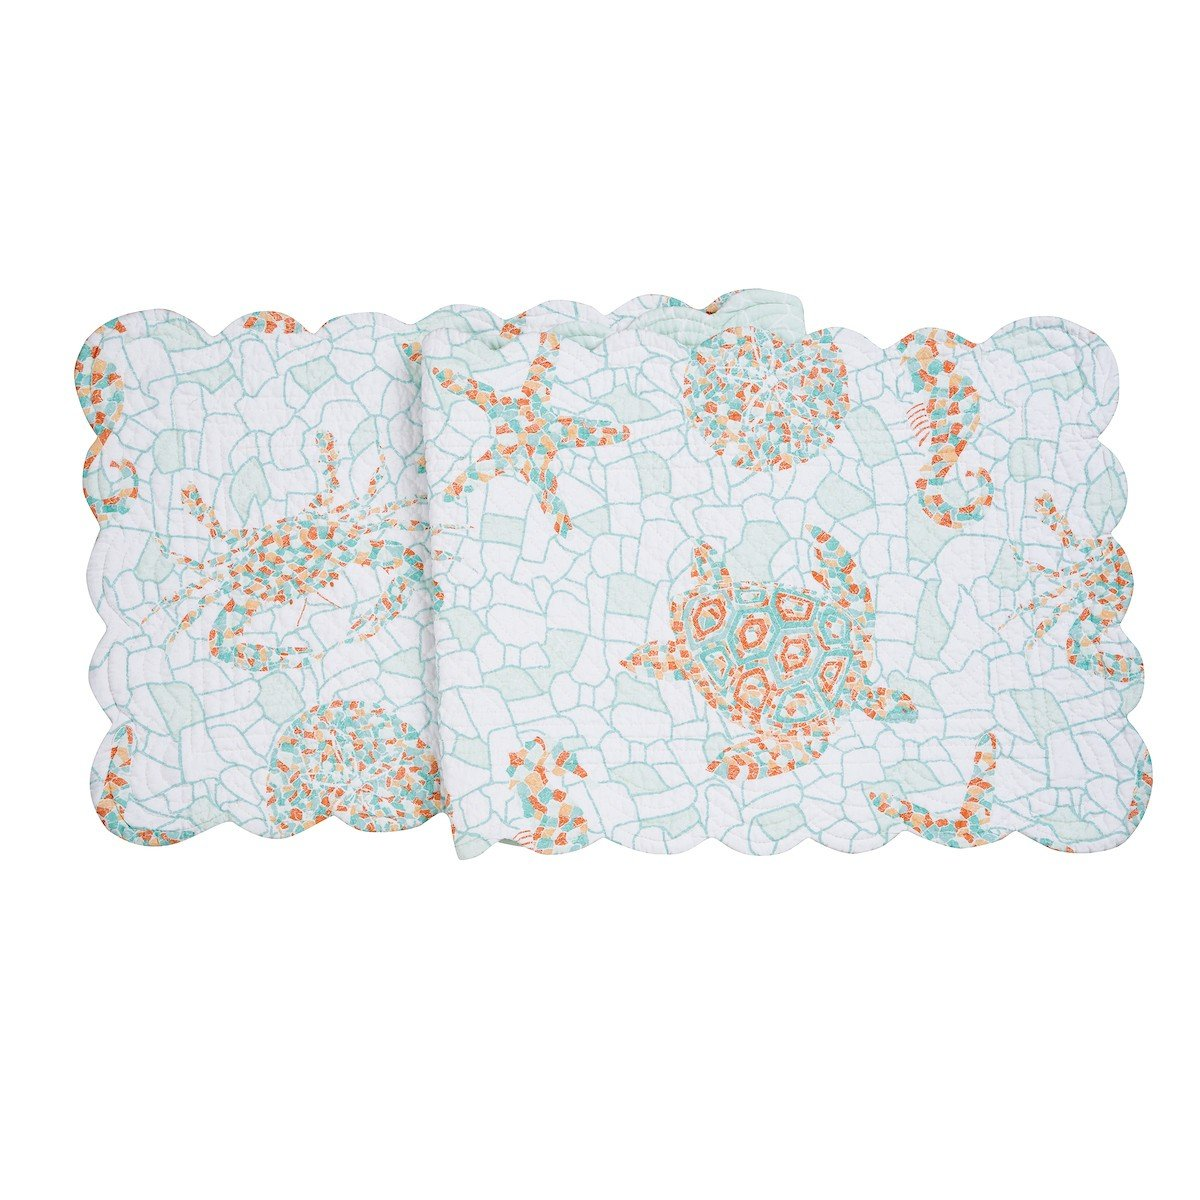 C&F Home Grand Turks Cotton Quilted Reversible Table Runner 14x51 Runner Blue